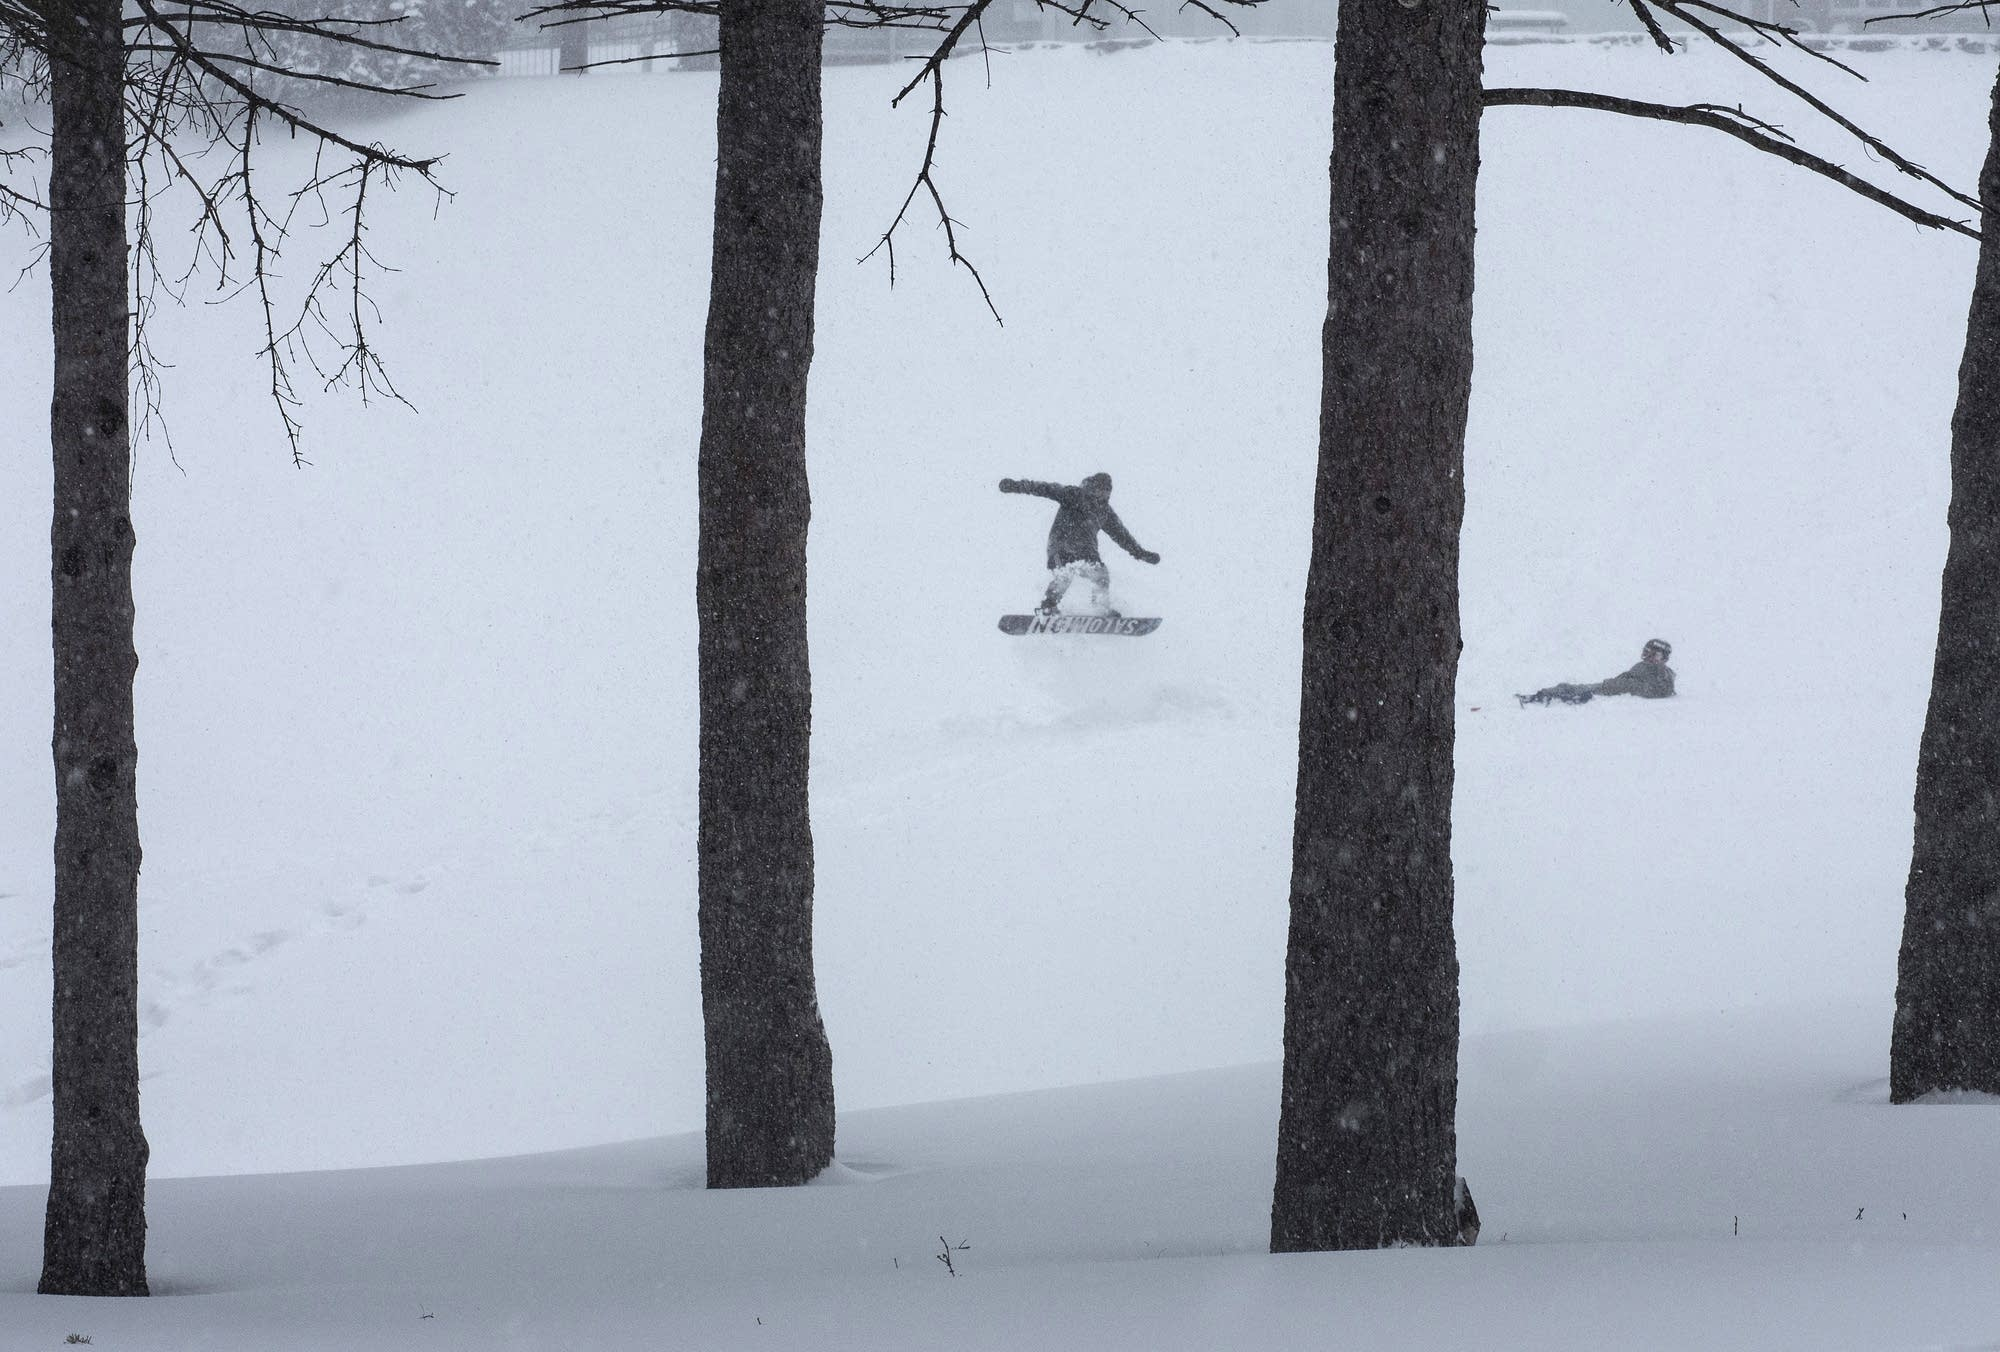 Two snowboarders were the only ones taking advantage of fresh powder.